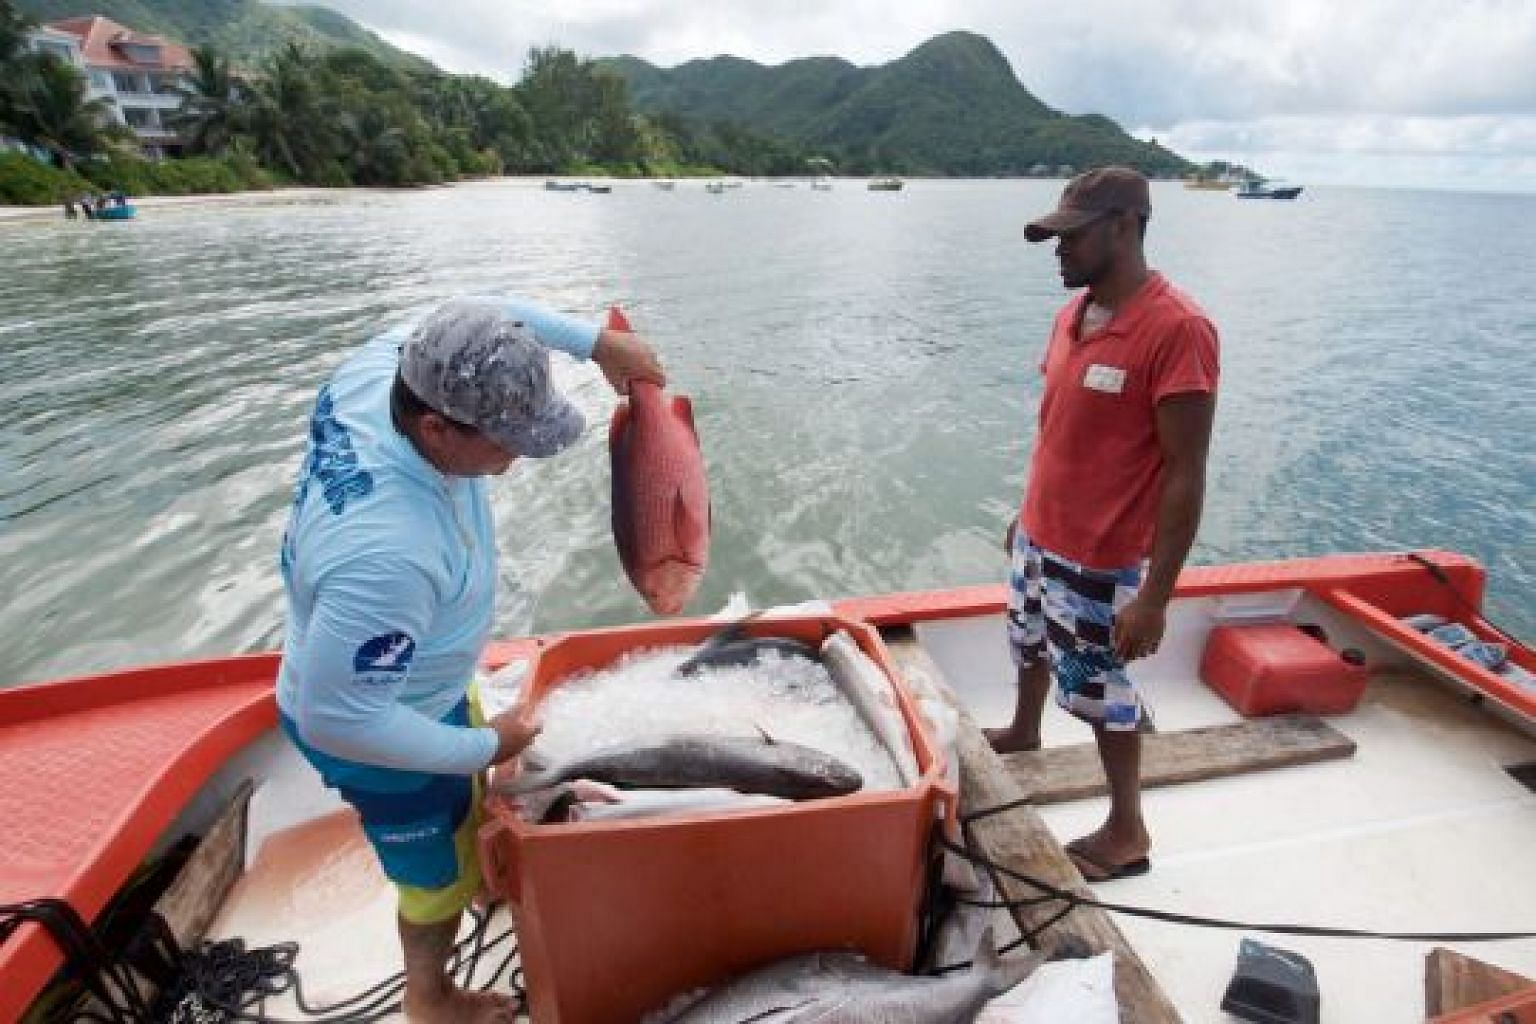 Fishermen sorting their catch in Praslin, one of the islands in Seychelles. The island nation mainly relies on tourism and fishing for revenue, but in recent years, oil and gas companies have been exploring its waters.